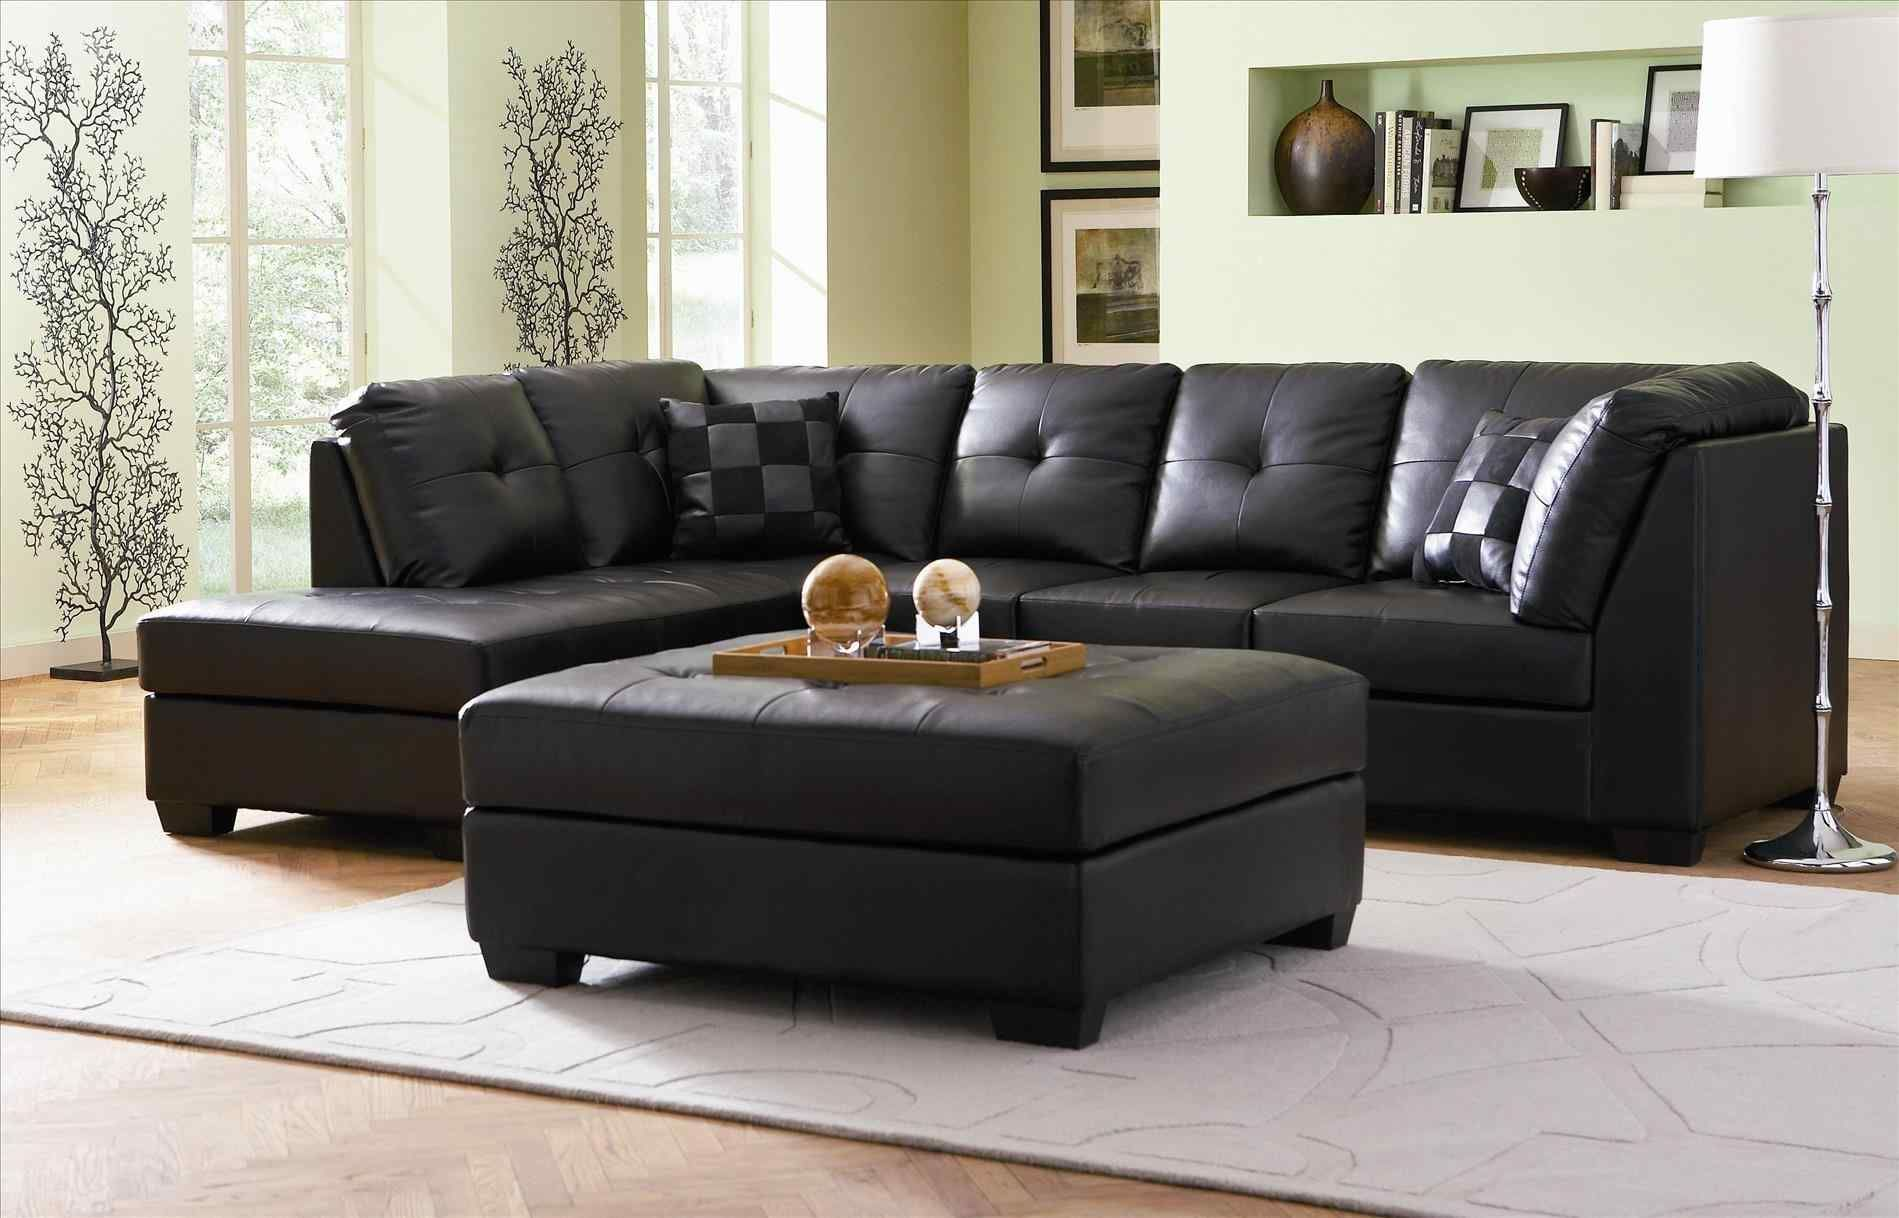 Leather Cheap Sectional Sofas Nyc Sleeper Sofa Model Wonderful Black For  With Additional Wonderful Cheap Sectional